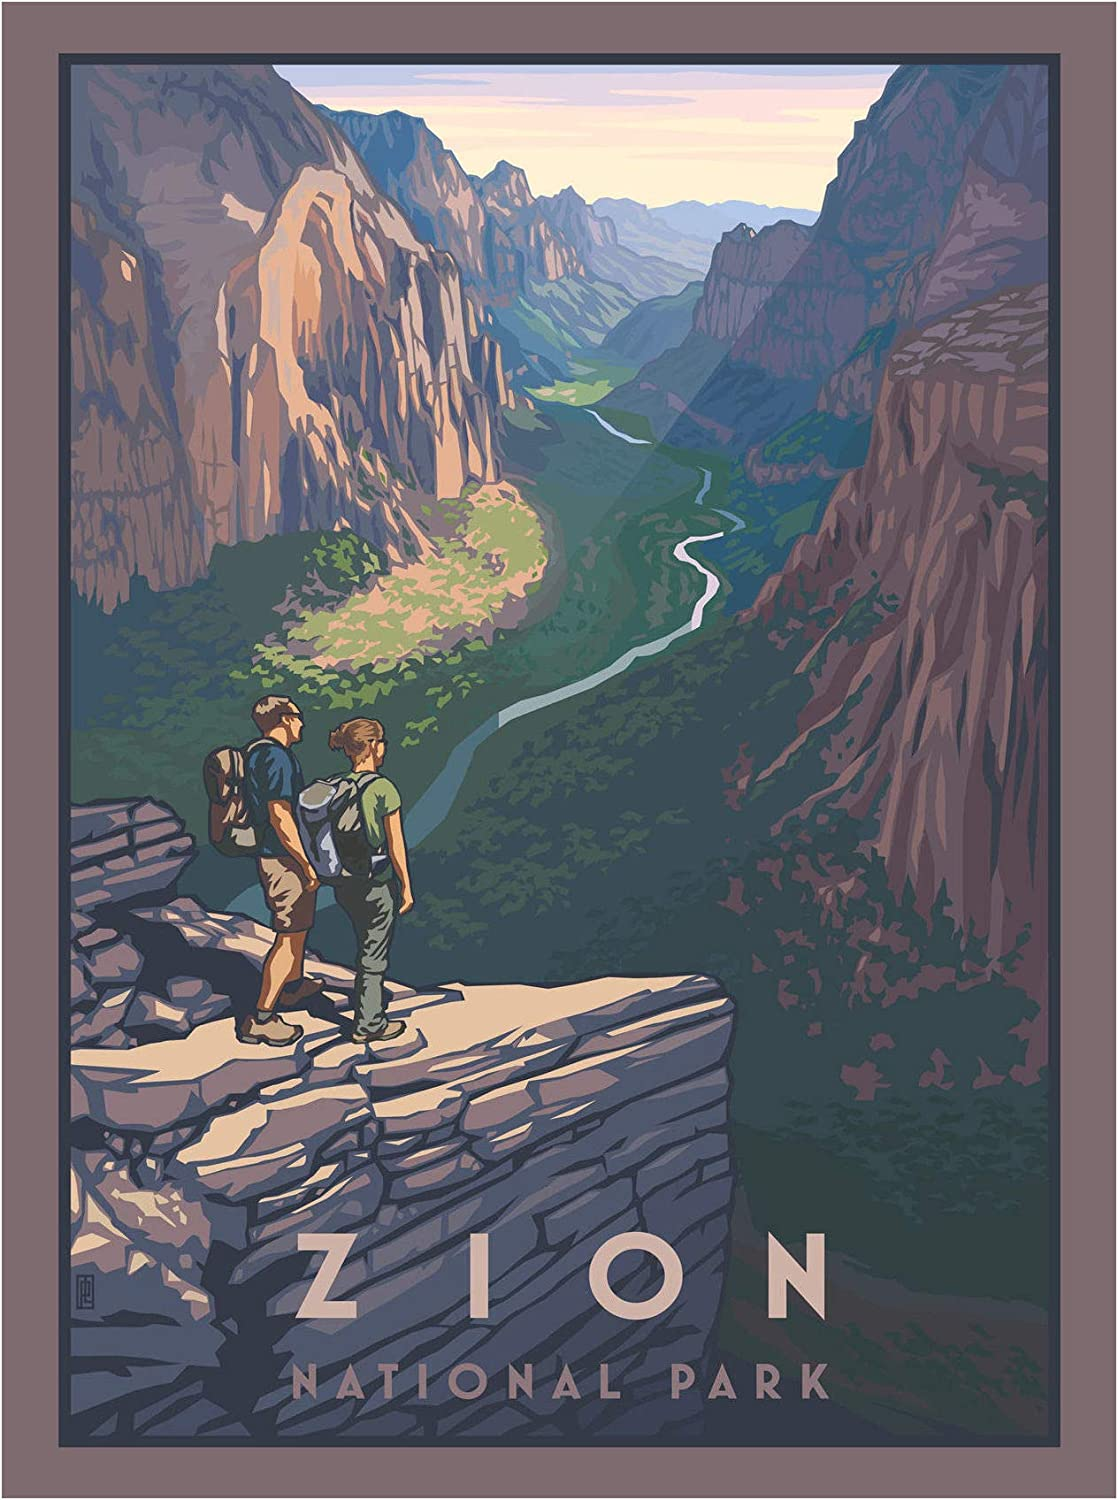 Zion Canyon National Overseas parallel import regular item Popular standard Park Giclee Poster Tra Print from Art